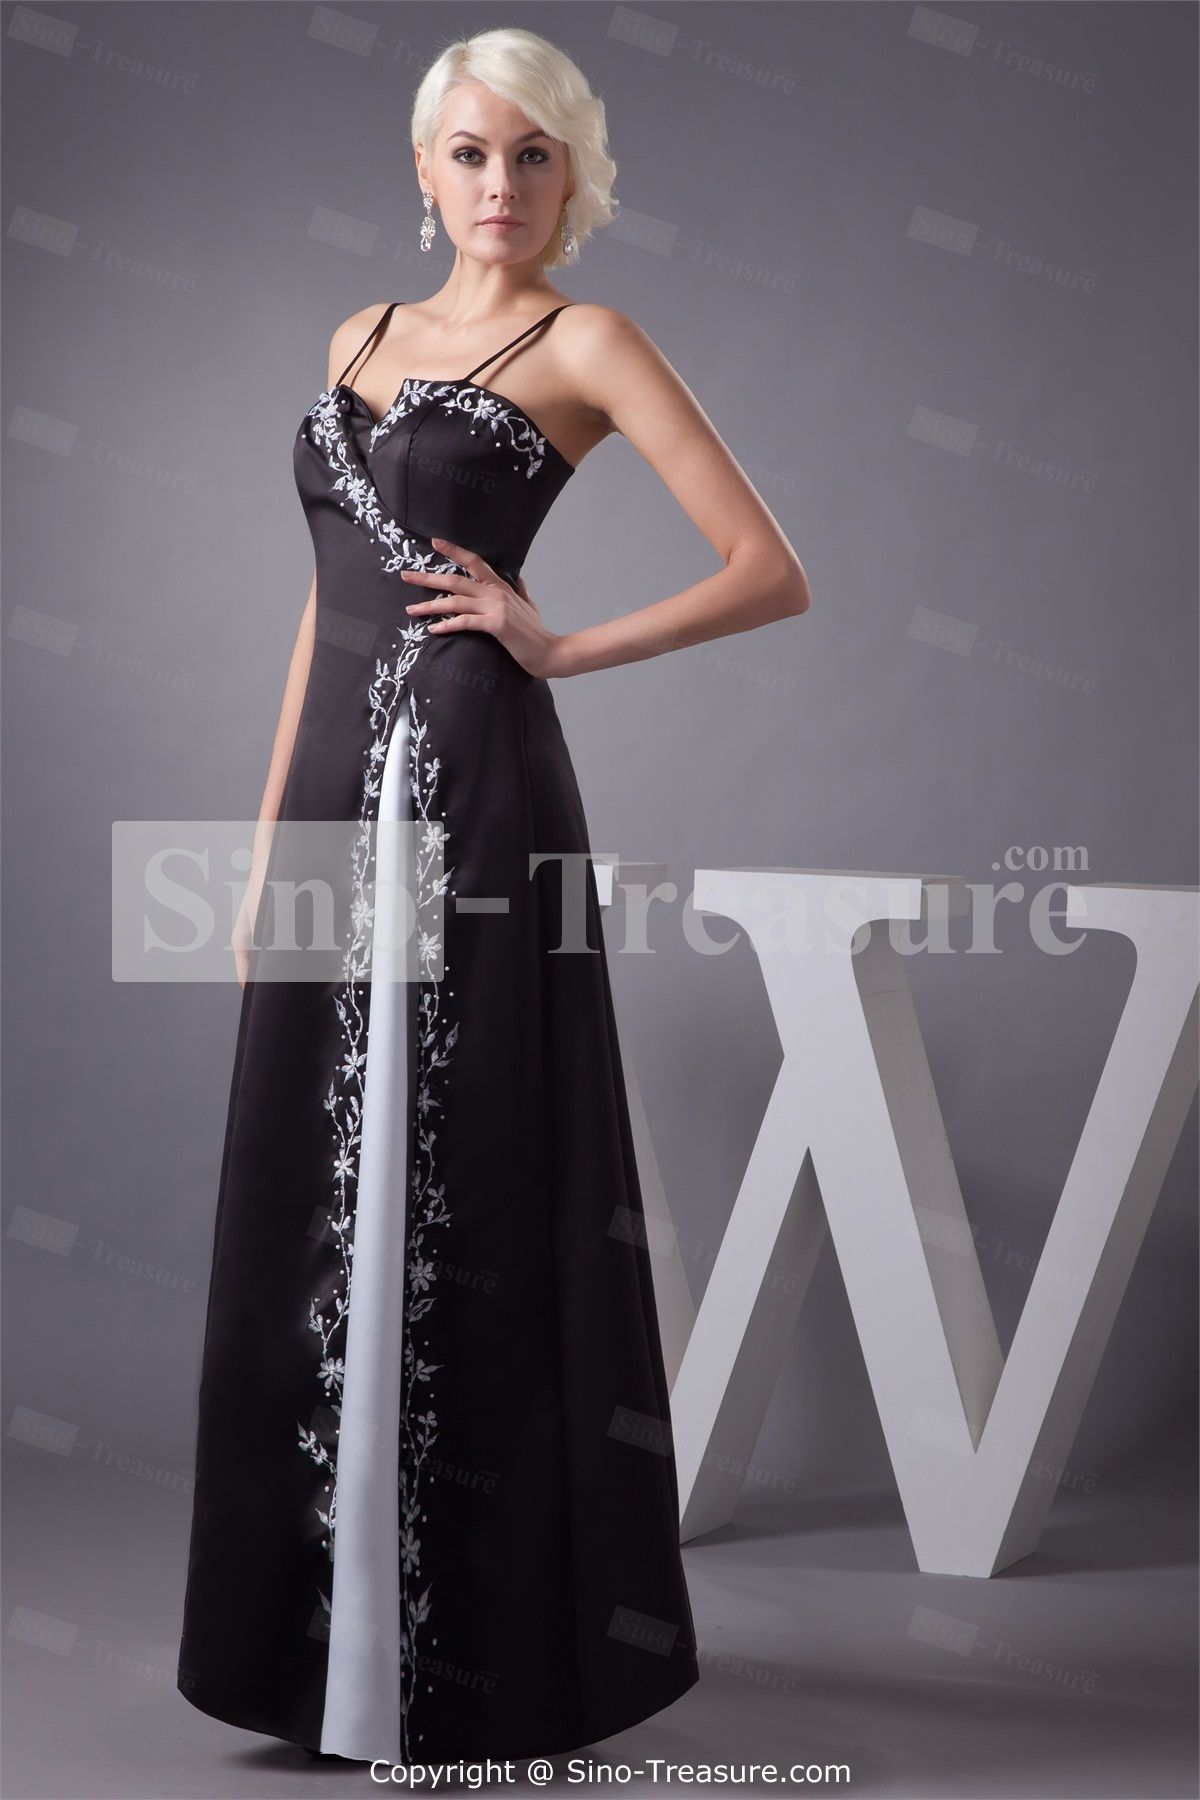 Fantastic black and white anklelength beading satin prom dress